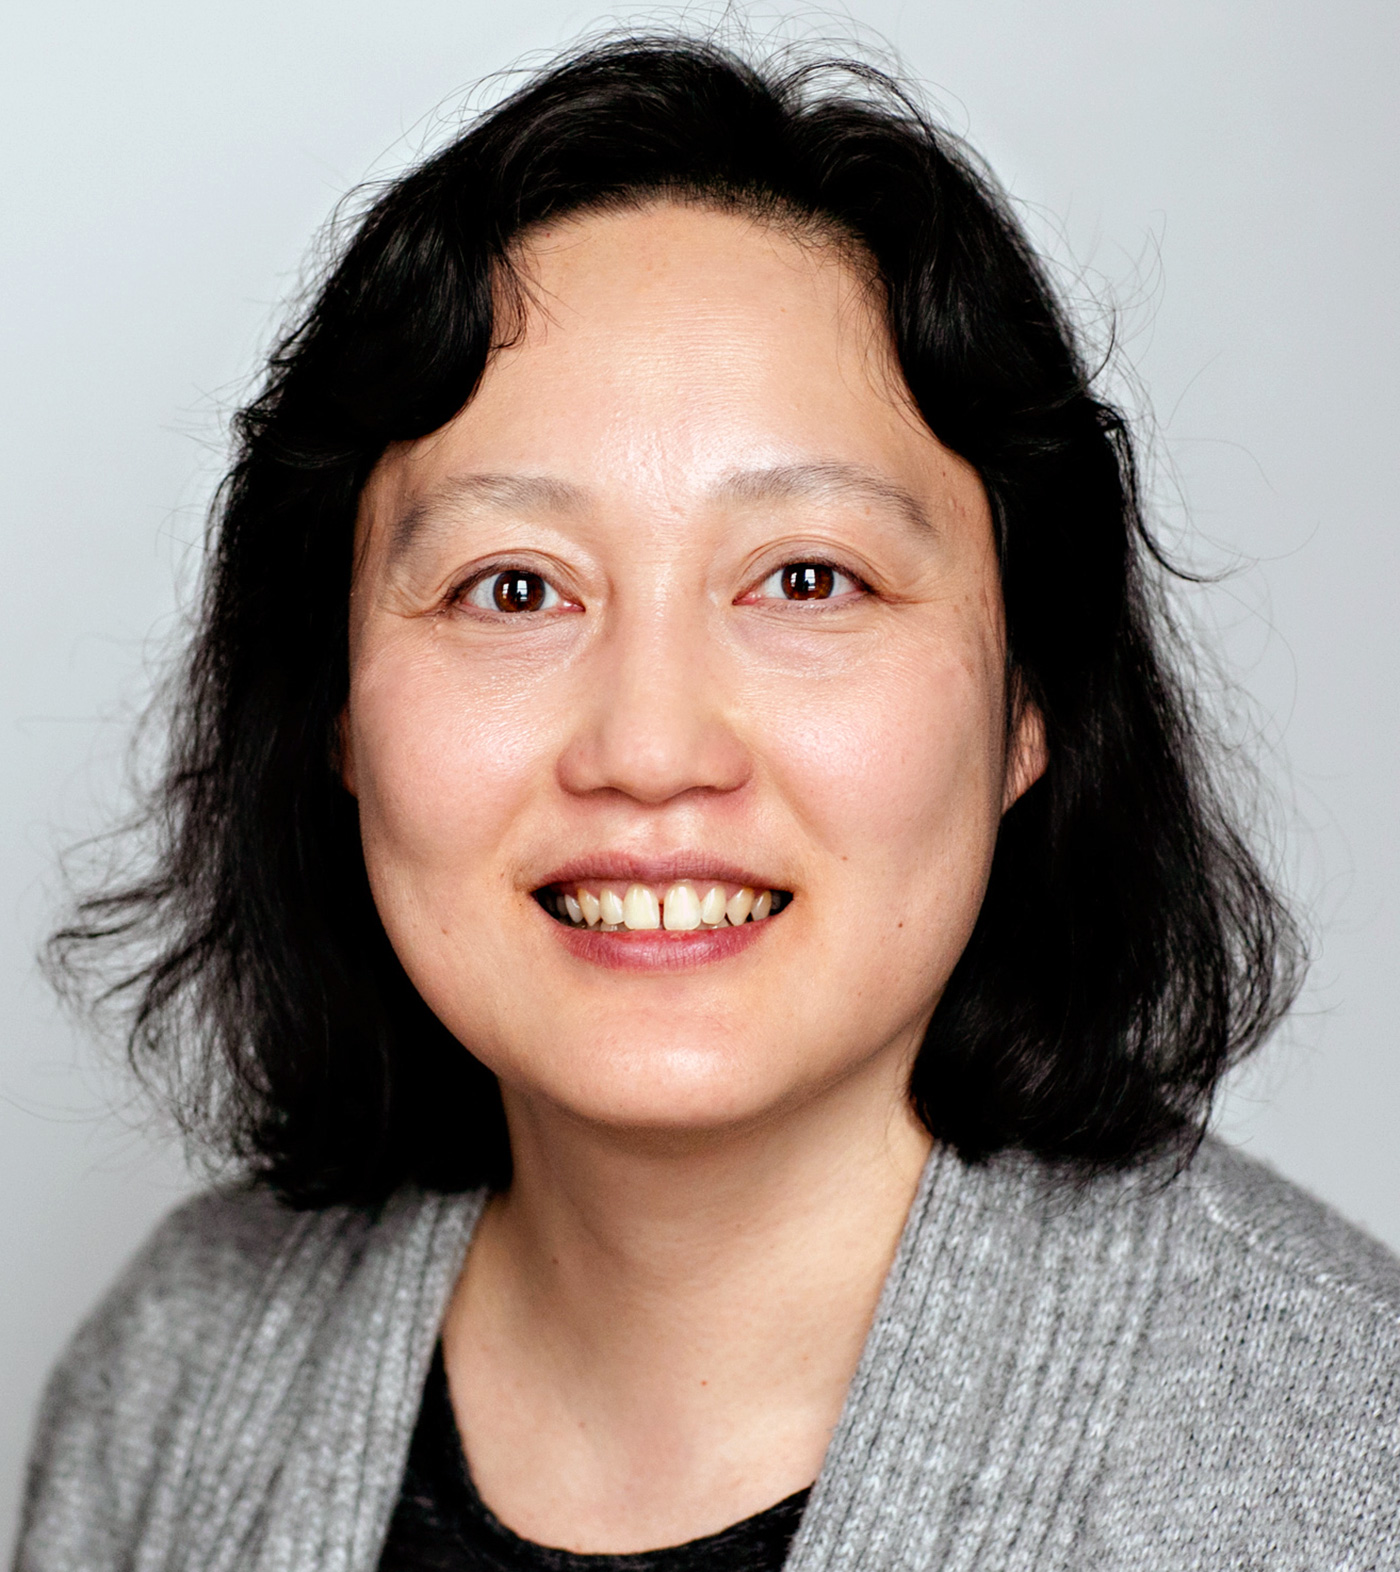 IMAGE OF Ivy Ho. Ivy Ho is an Associate Professor of Psychology at UMass Lowell.